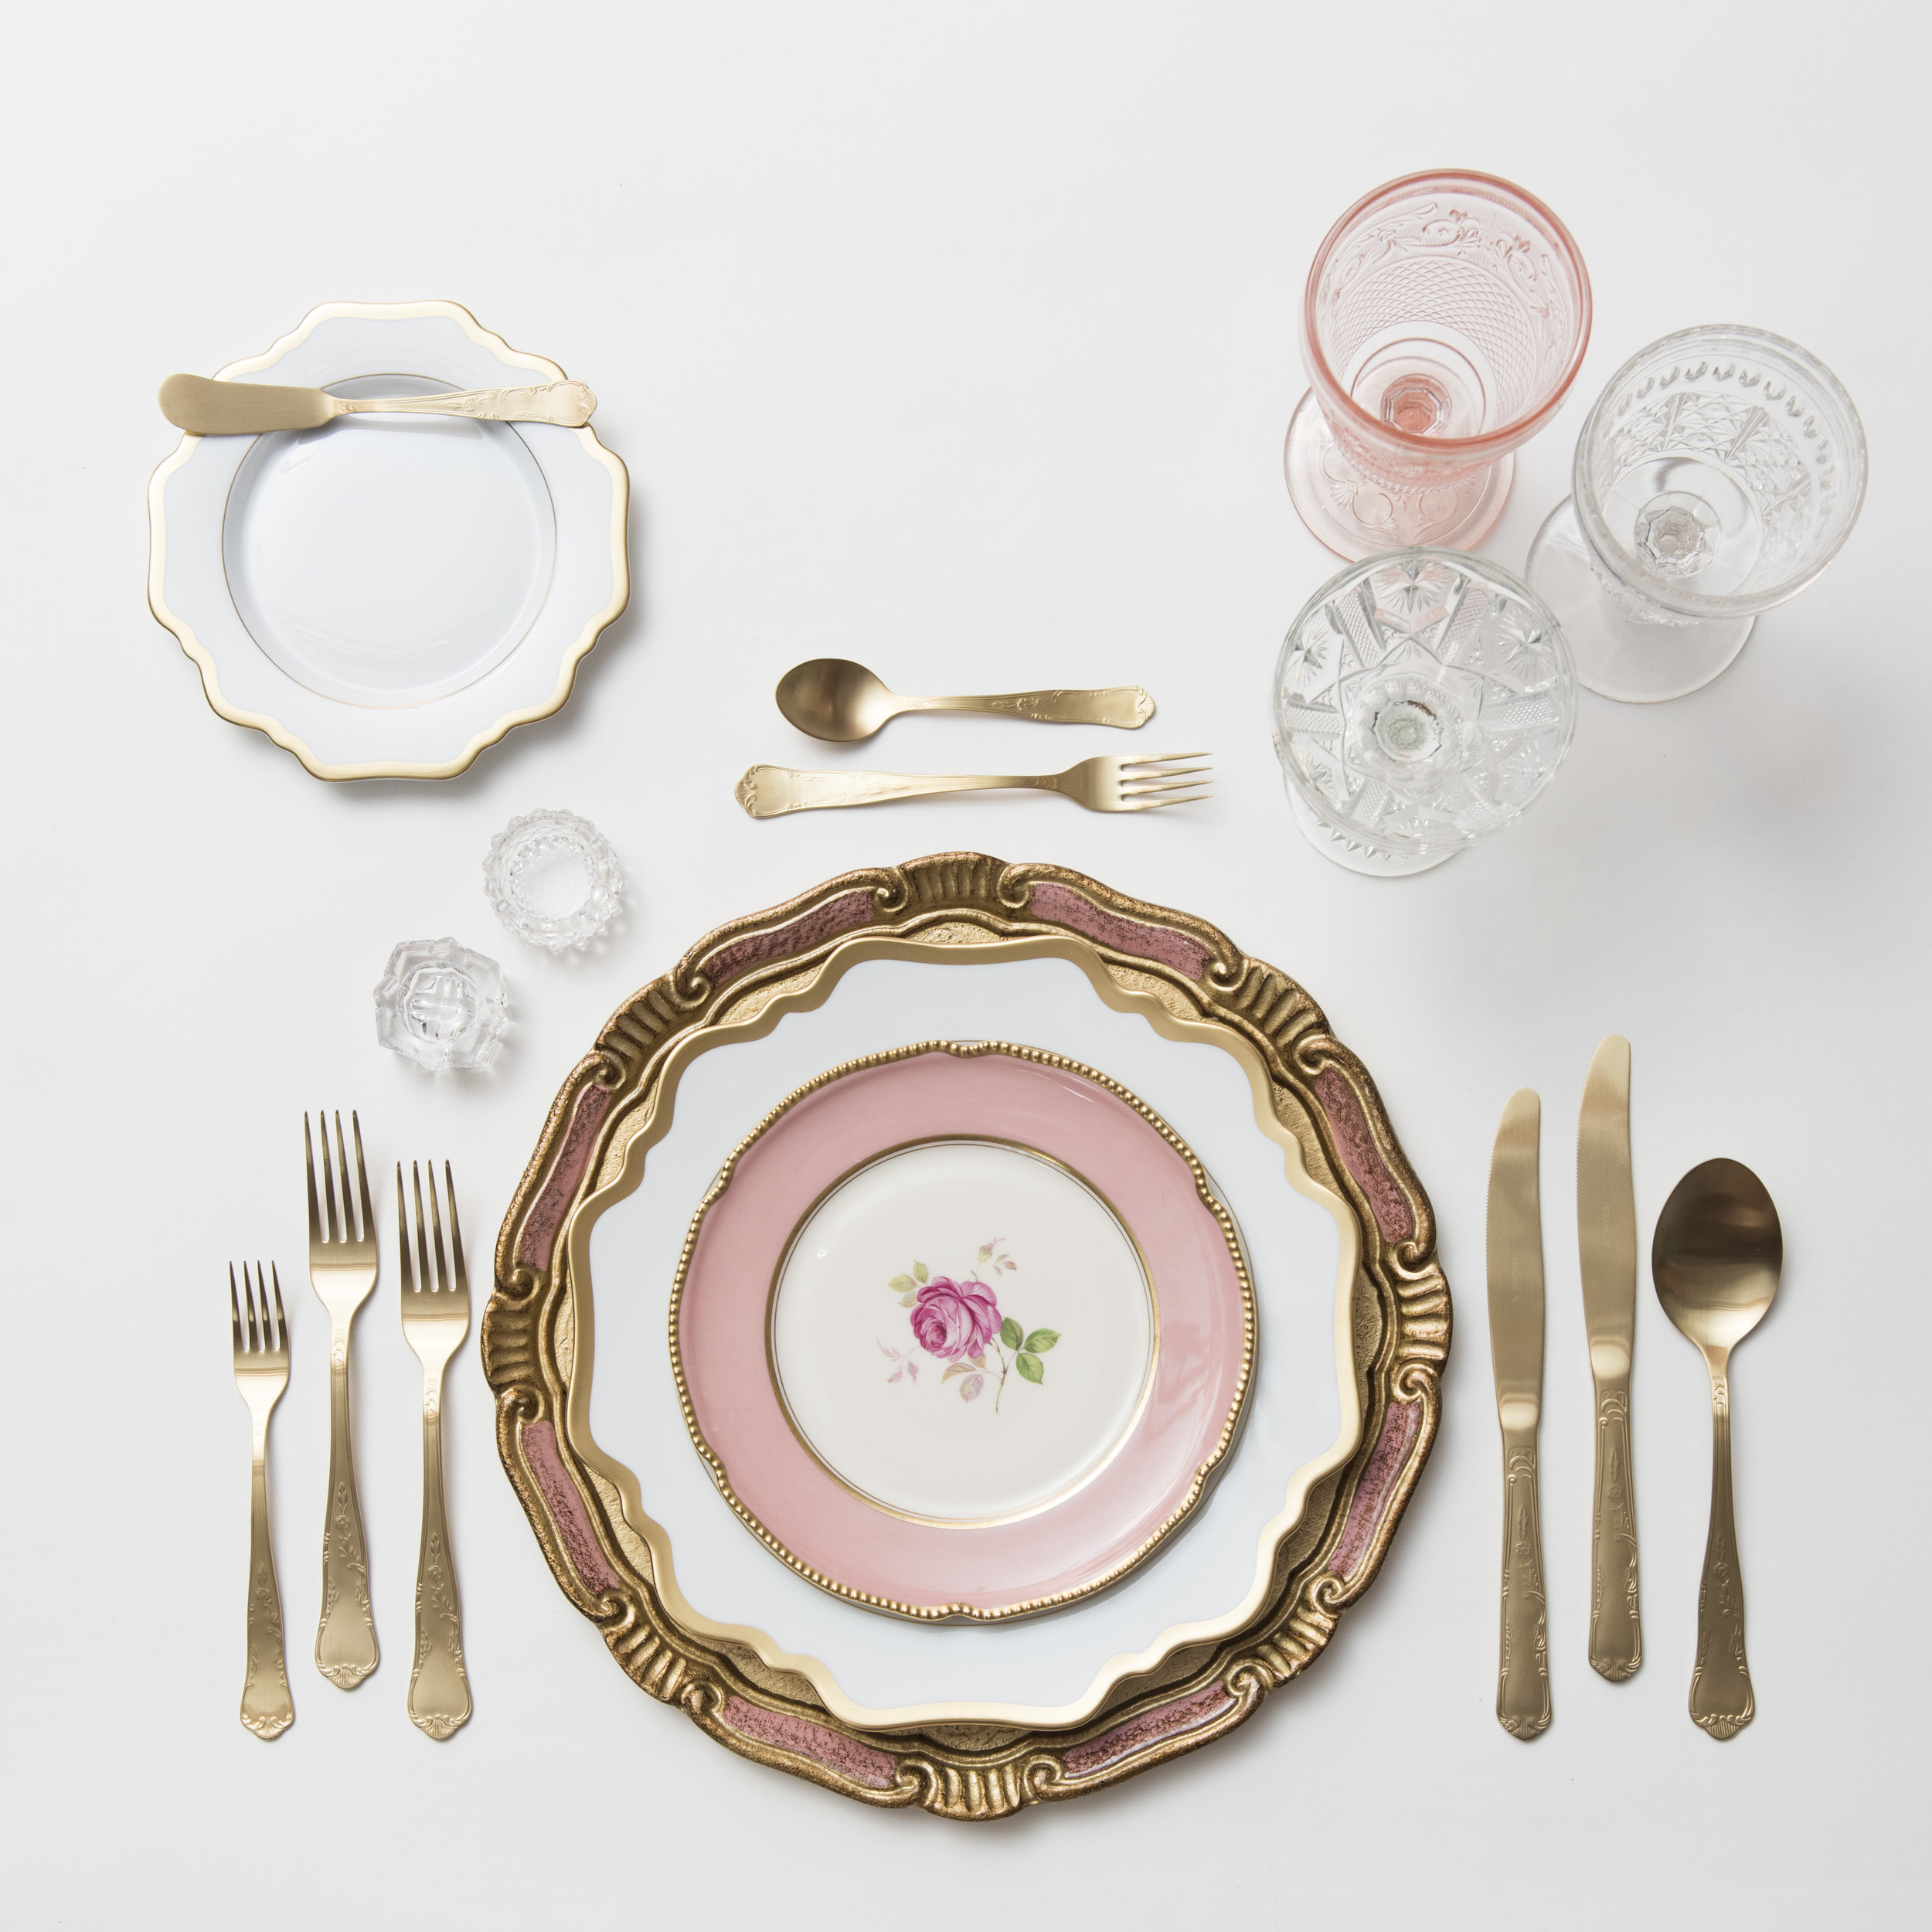 RENT: Florentine Chargers in Rose/Gold + Anna Weatherley Dinnerware in White/Gold + Pink Botanicals Vintage China + Chateau Flatware in Matte Gold + Pink Vintage Goblets + Early American Pressed Glass Goblets + Vintage Champagne Coupes + Antique Crystal Salt Cellars  SHOP: Anna Weatherley Dinnerware in White/Gold